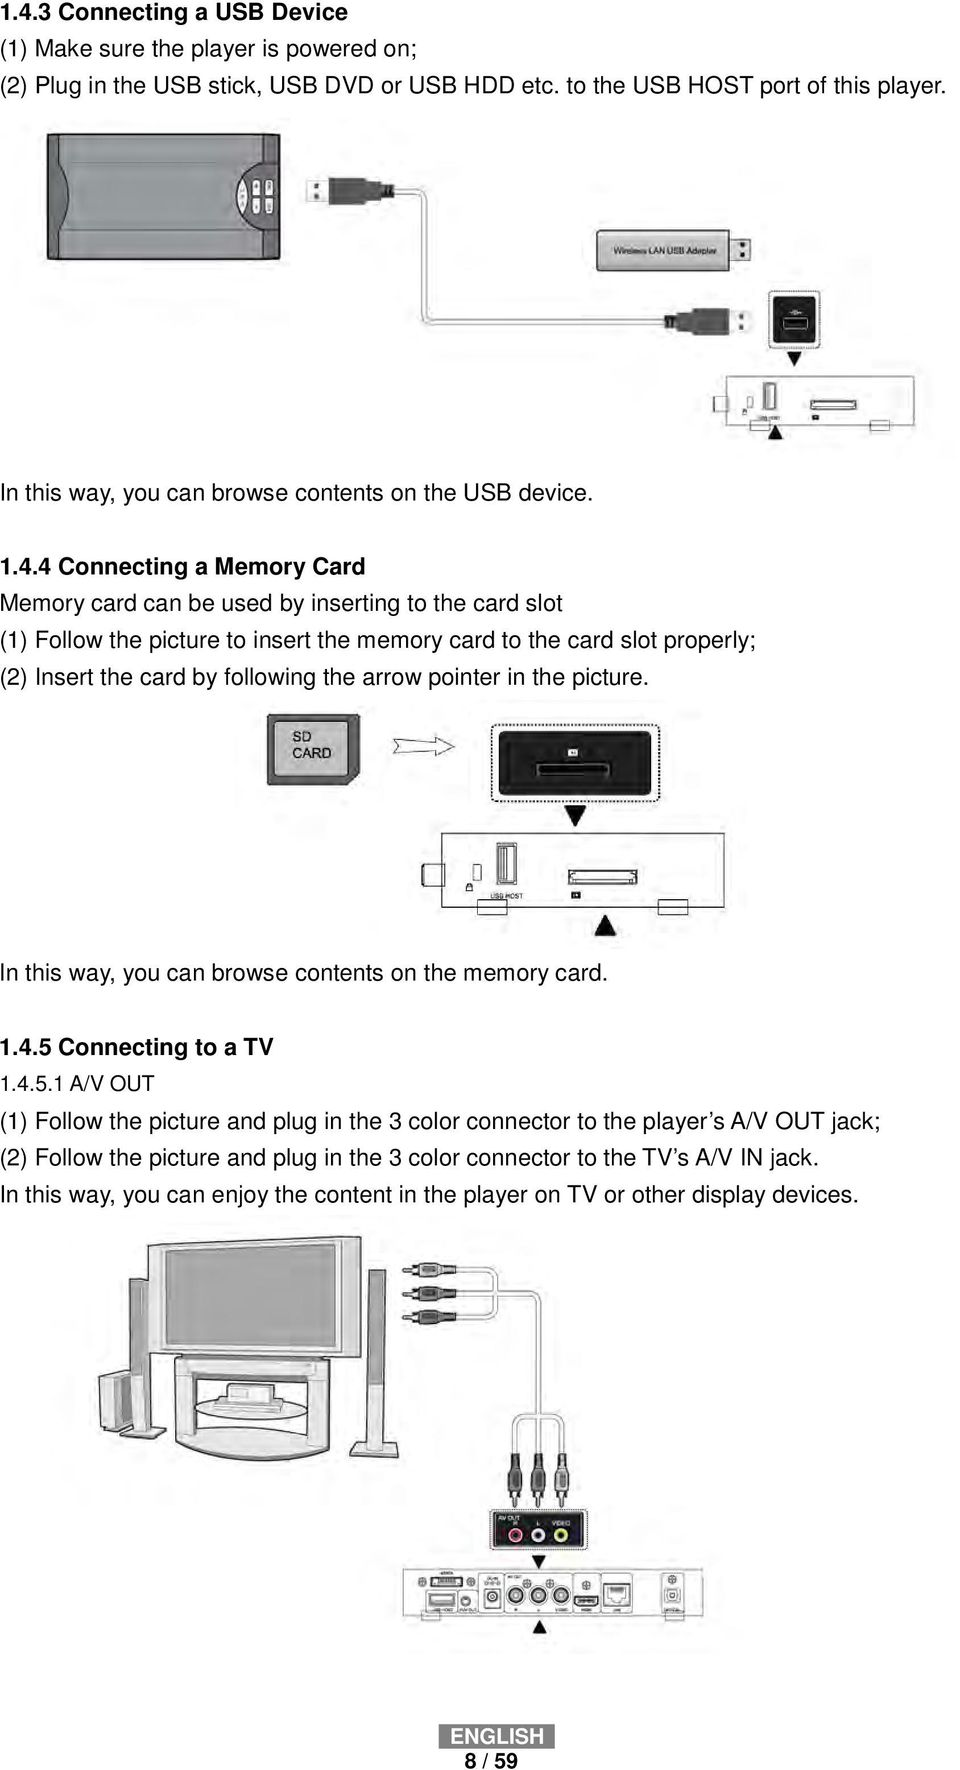 4 Connecting a Memory Card Memory card can be used by inserting to the card slot (1) Follow the picture to insert the memory card to the card slot properly; (2) Insert the card by following the arrow